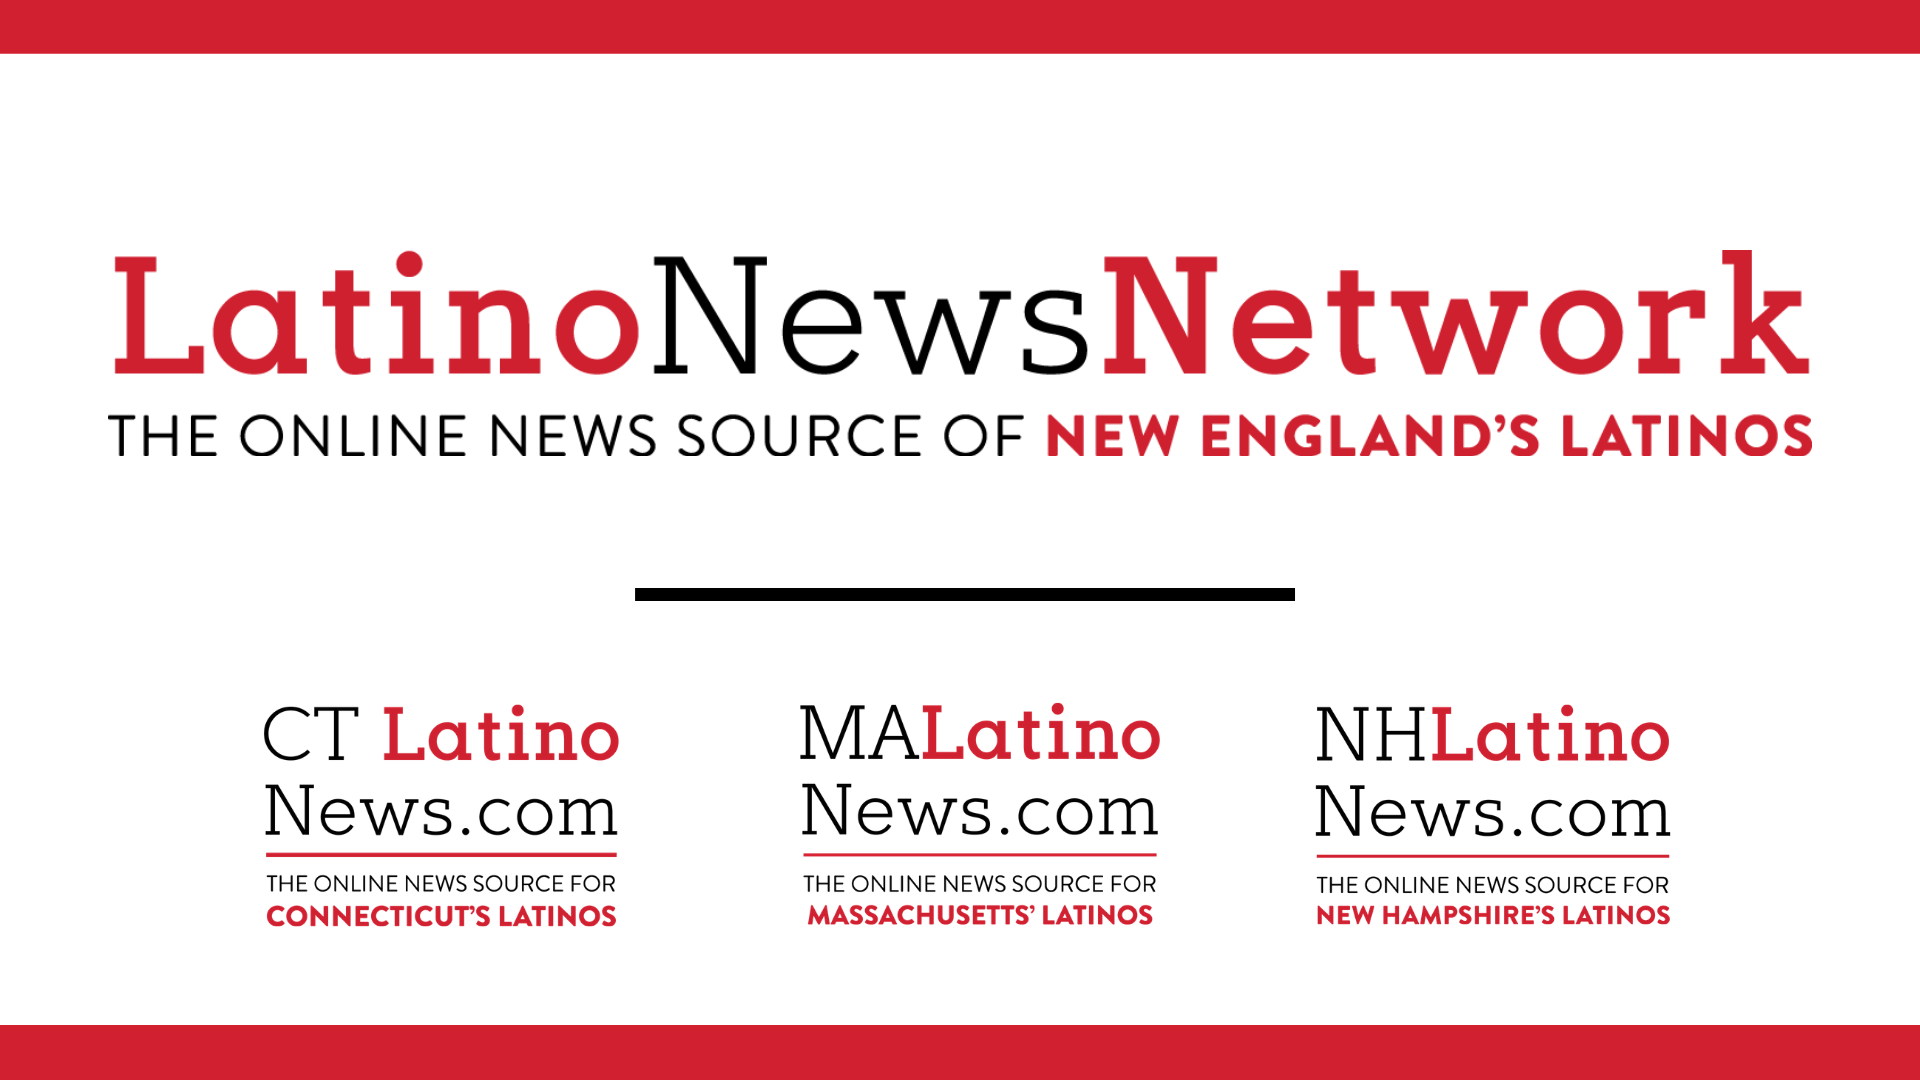 Latino News Network Expands Digital News Outlet with Focus on serving New Hampshire's Underserved Communities